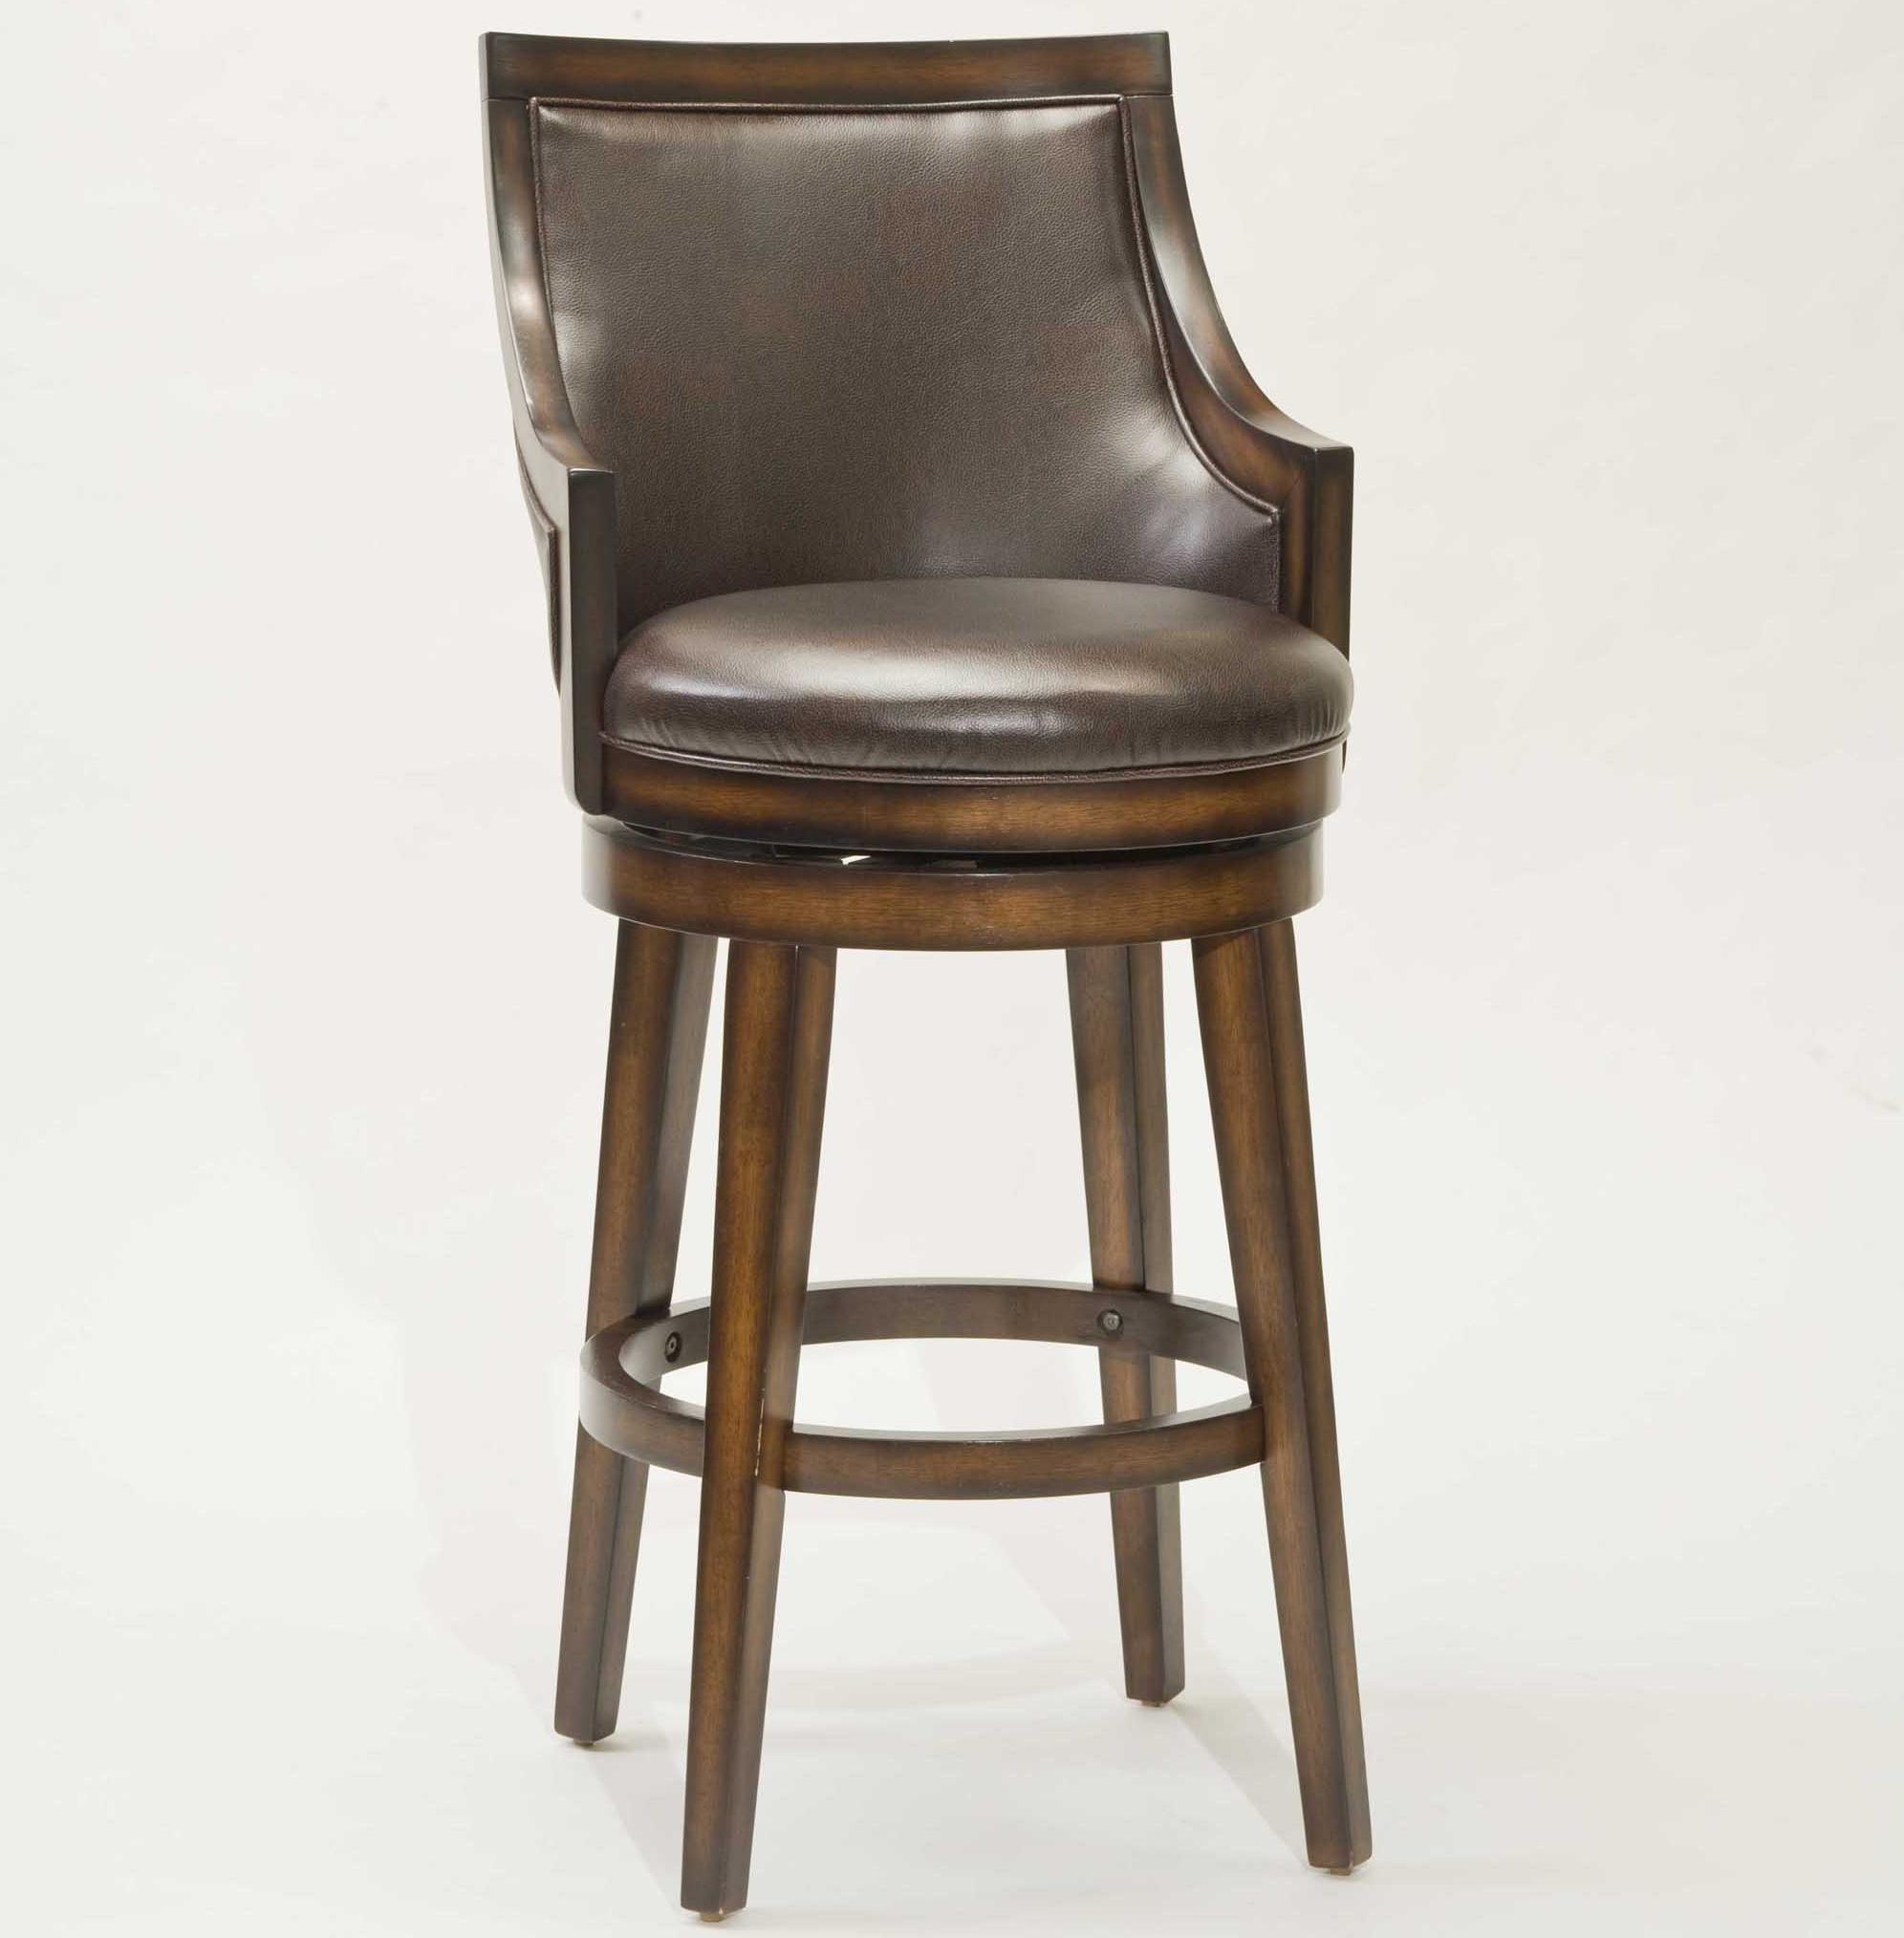 26 Quot Counter Height Lyman Swivel Stool By Hillsdale Wolf